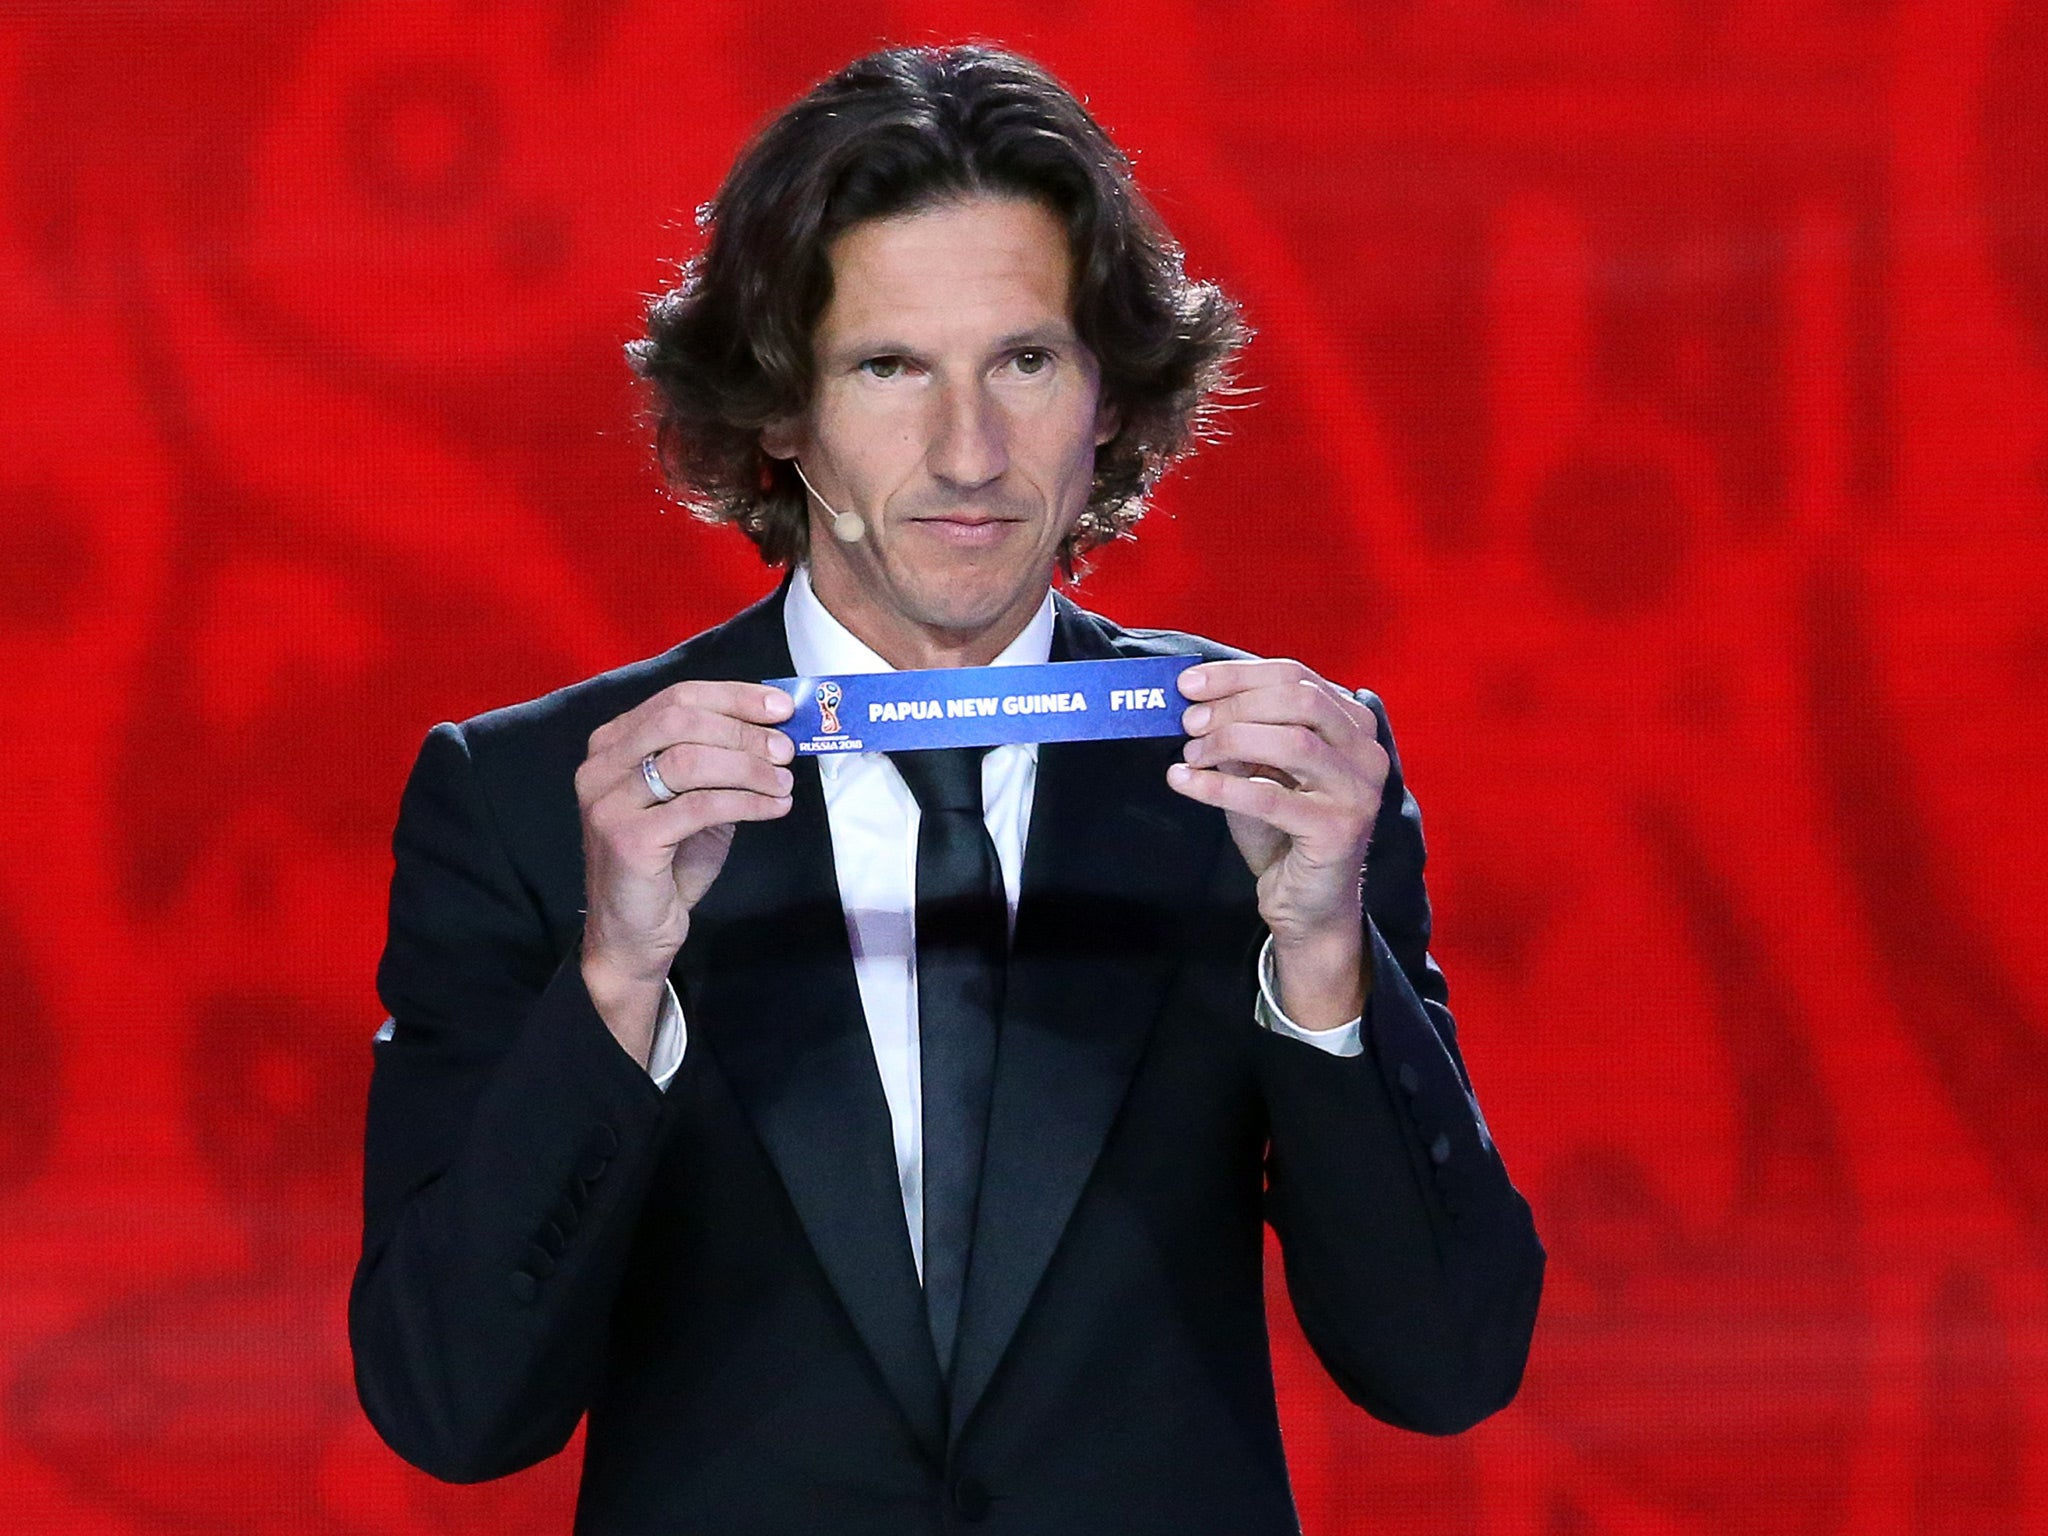 Russia anti-racism chief Alexey Smertin guarantees there will be no racism at 2018 World Cup